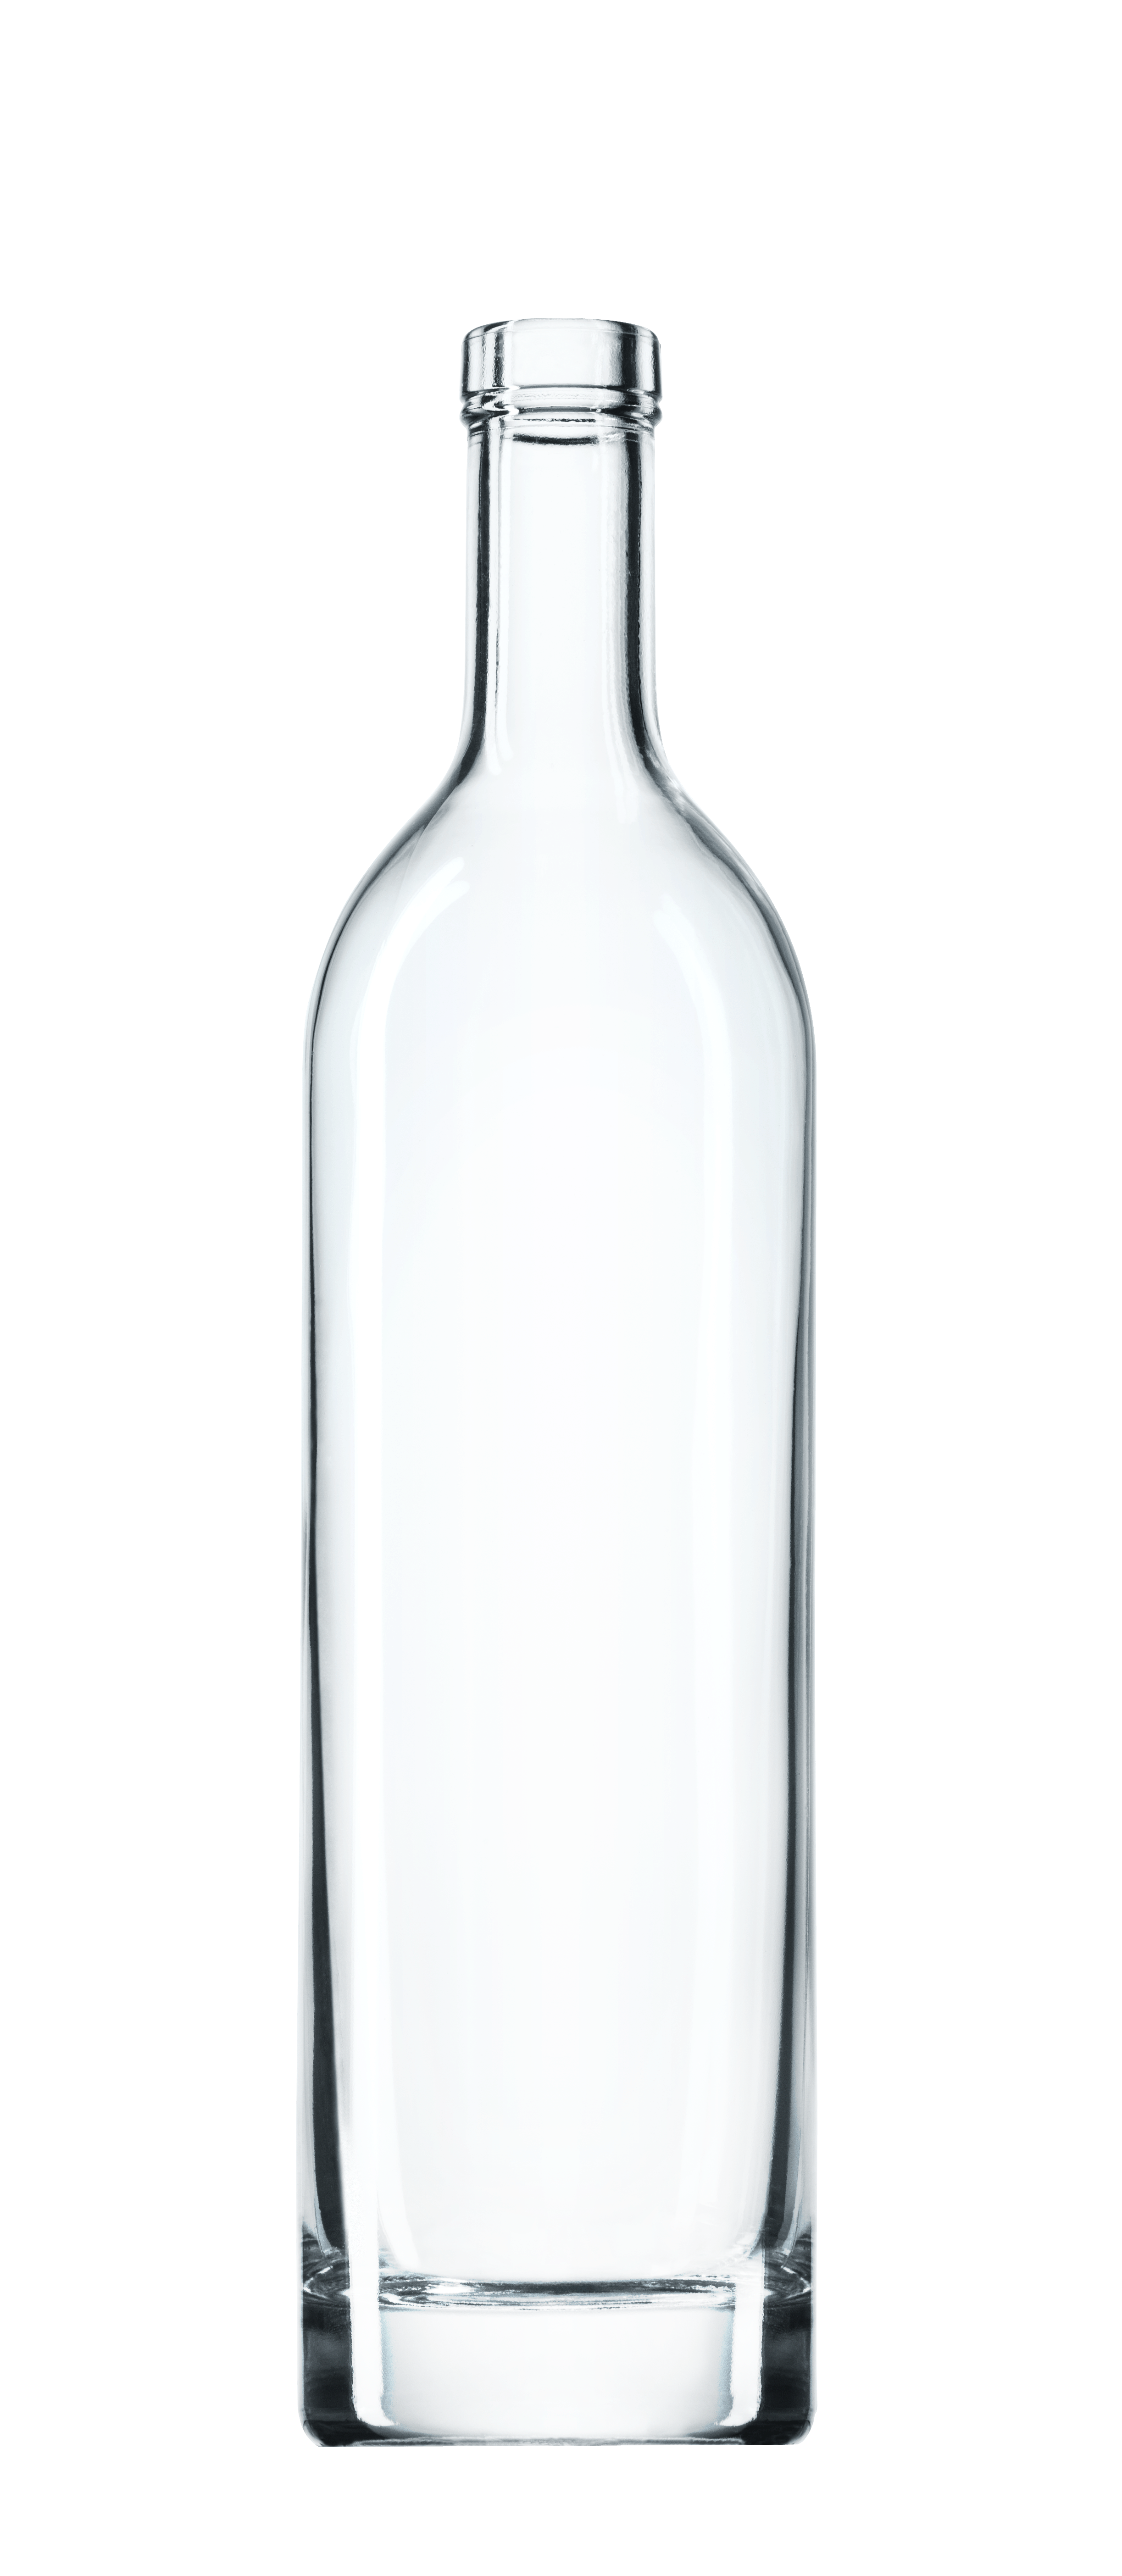 Distinction Liquor bottle sold by SGP Packaging by Verallia